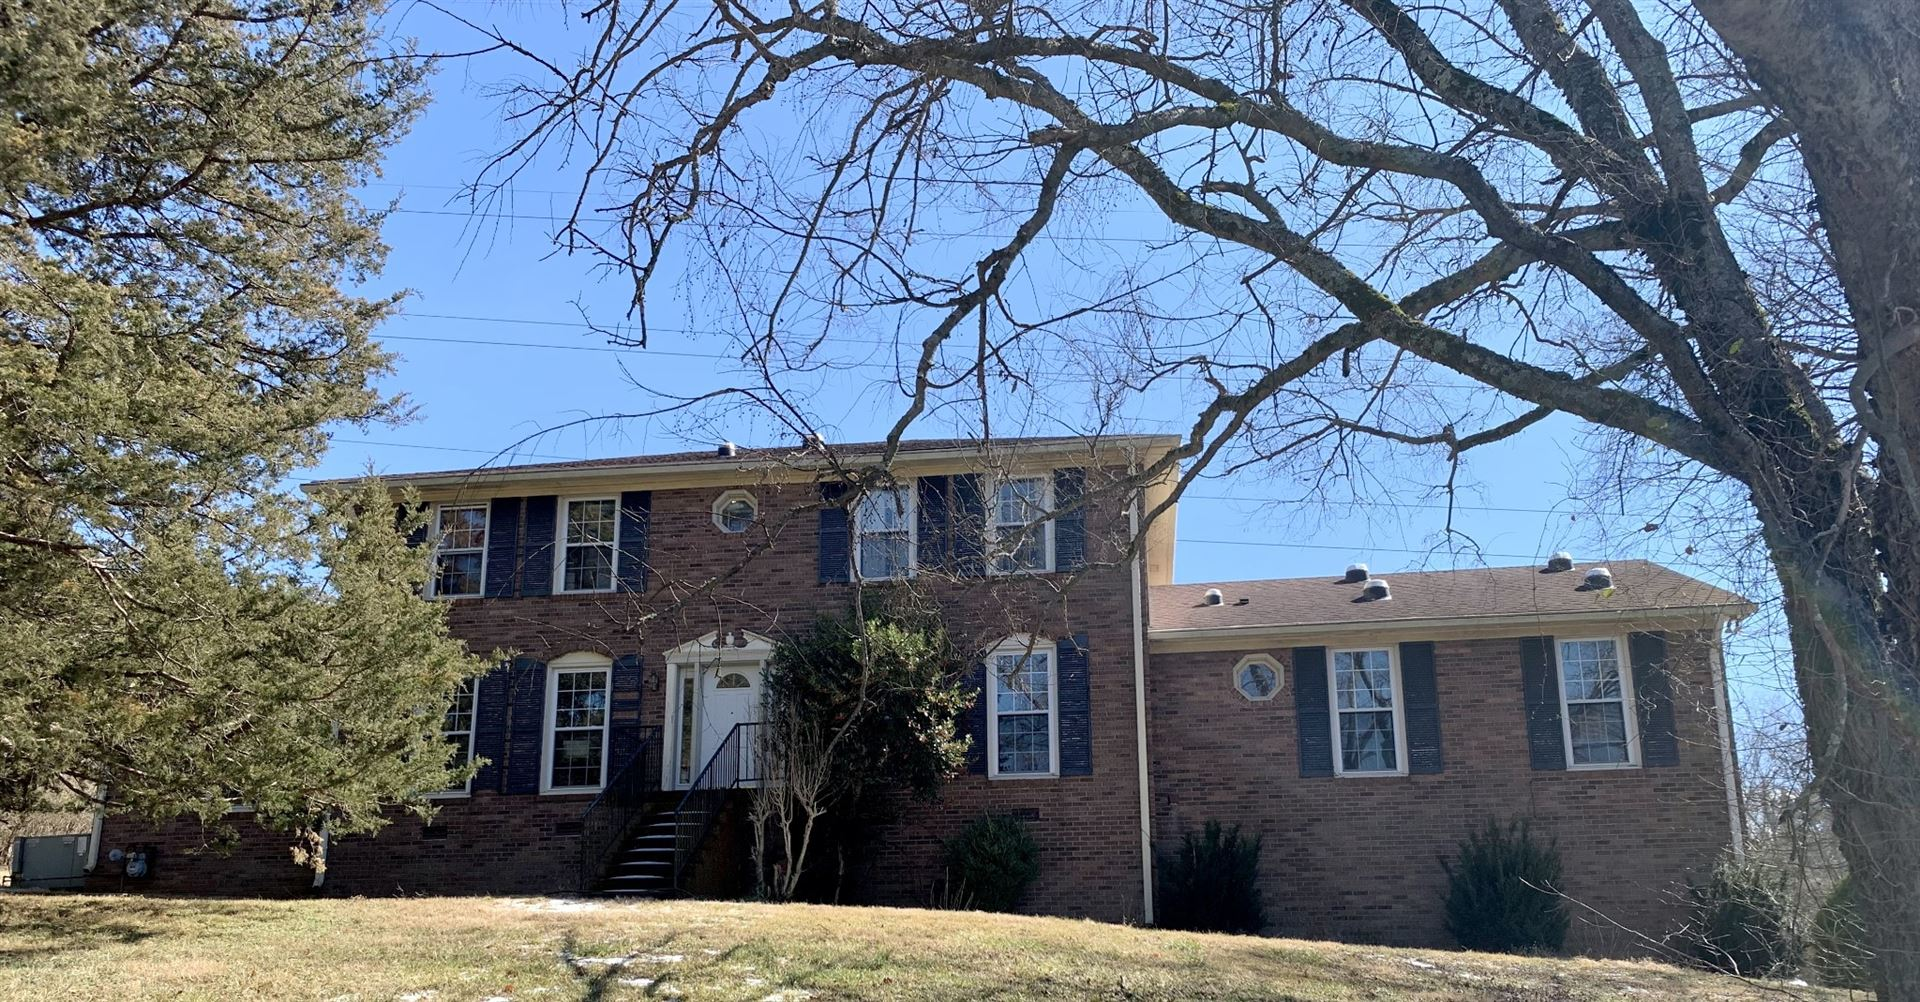 2228 Castlewood Dr, Franklin, TN 37064 - MLS#: 2231718